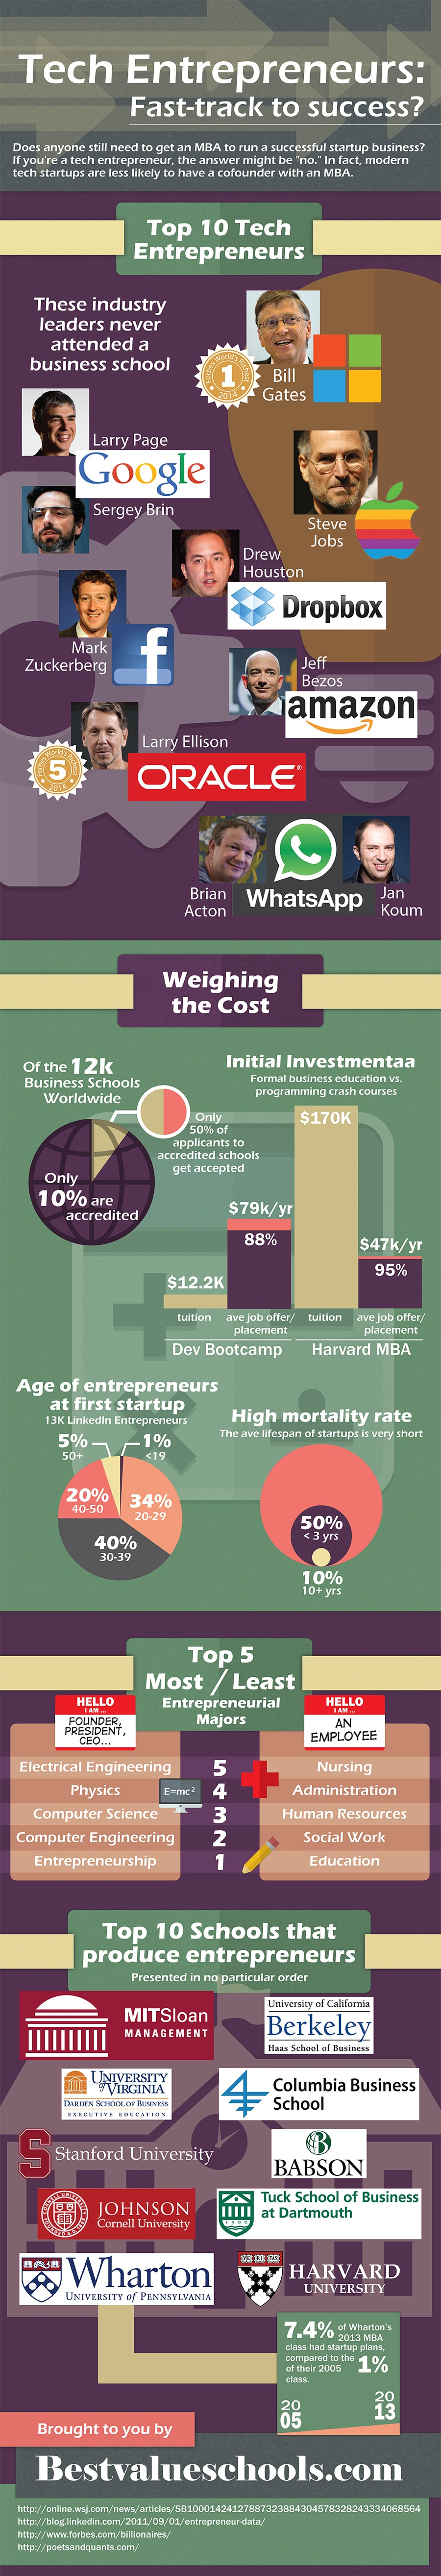 Need of MBA to Launch Tech Startup